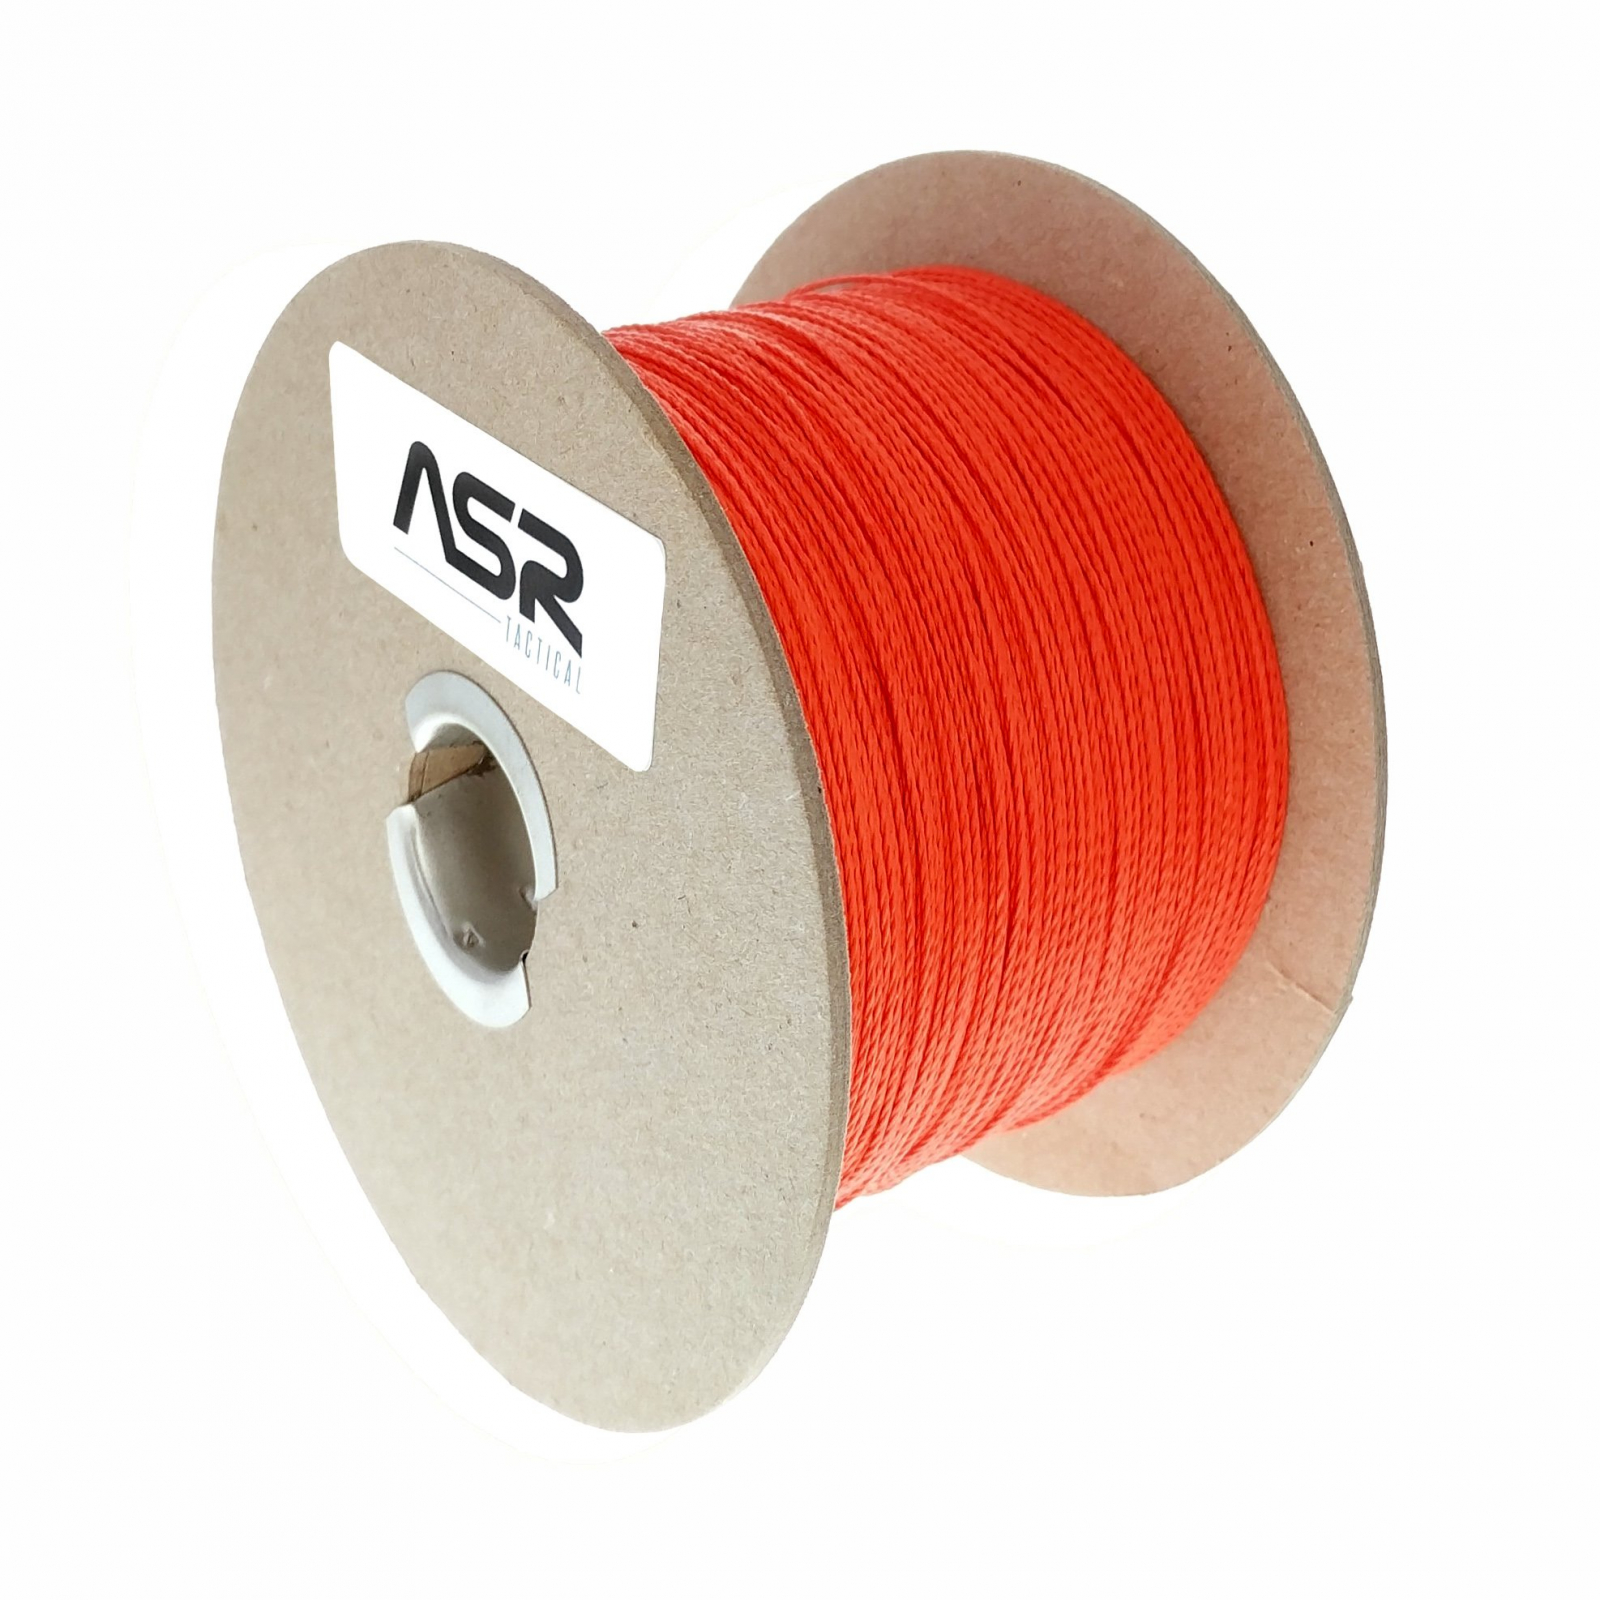 Kevlar Cord Survival Paracord Rope 200lbs Strength (Orange, 50ft)